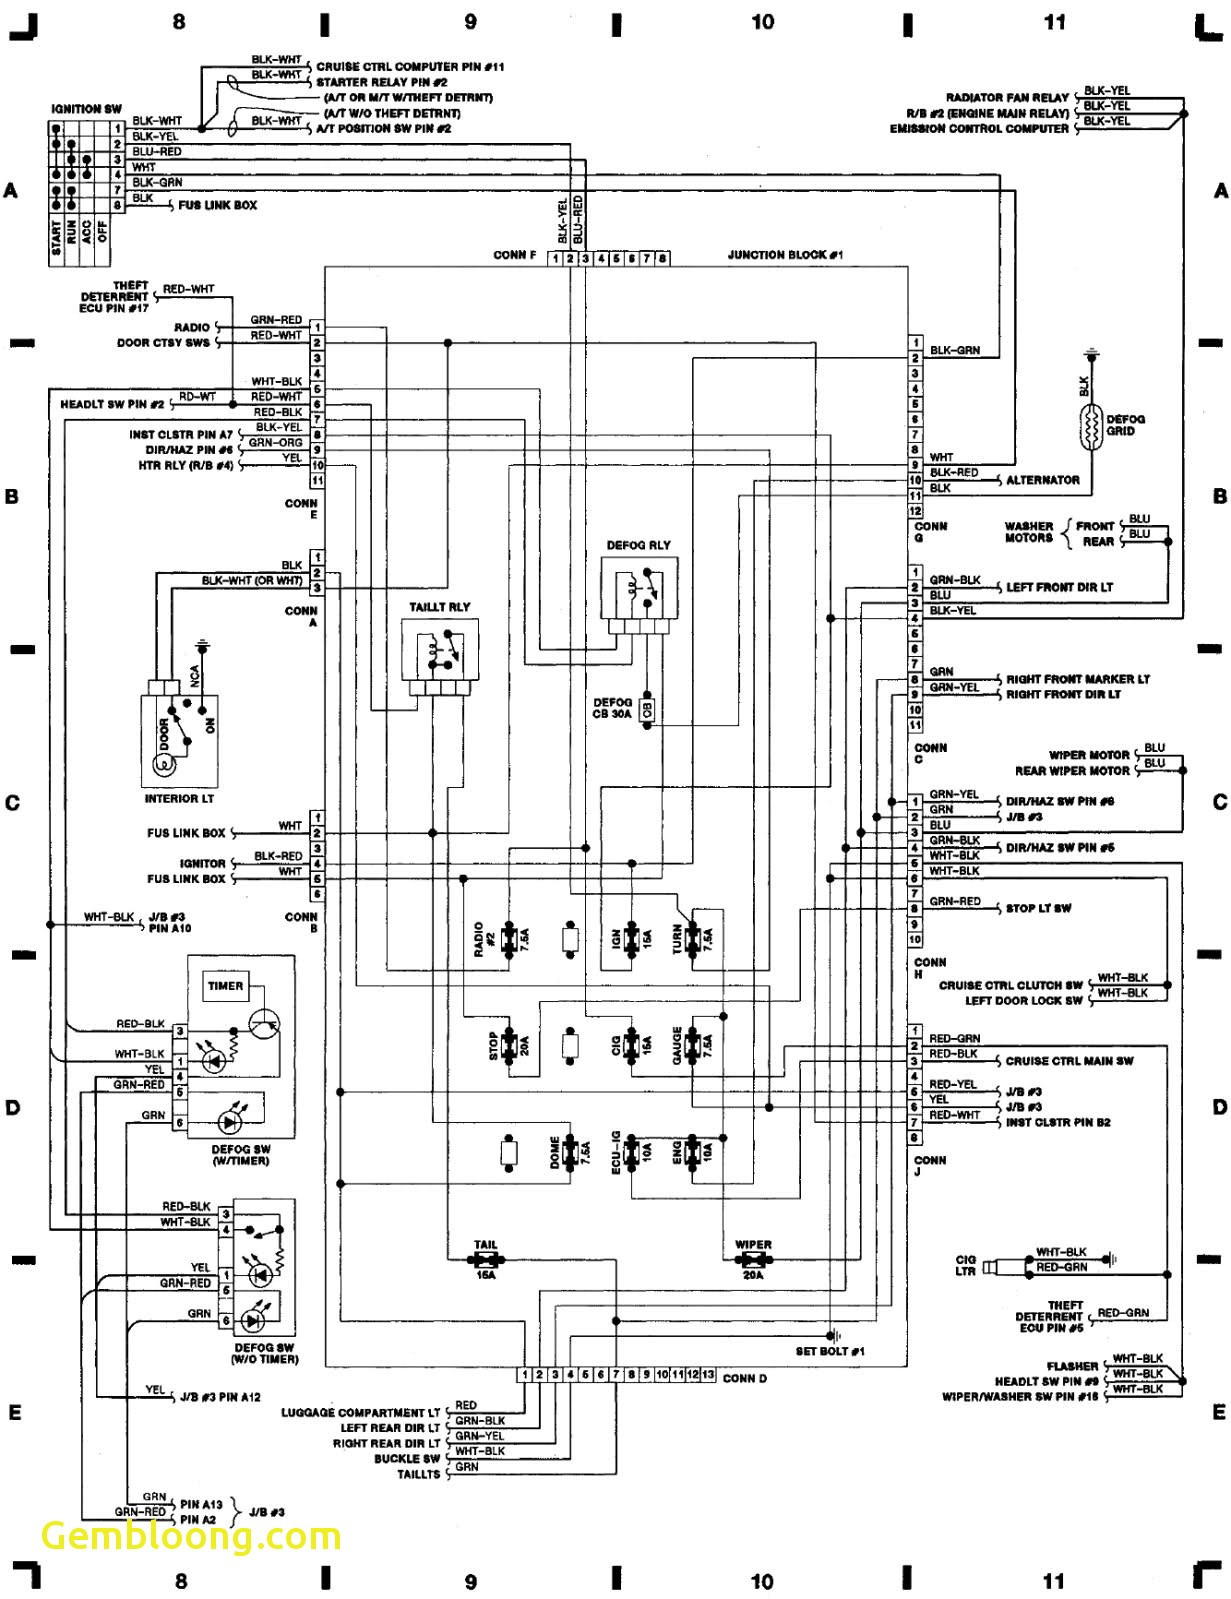 1990 toyota Camry Engine Diagram 2007 Corolla Wiring Diagram Wiring Diagram toolbox Of 1990 toyota Camry Engine Diagram